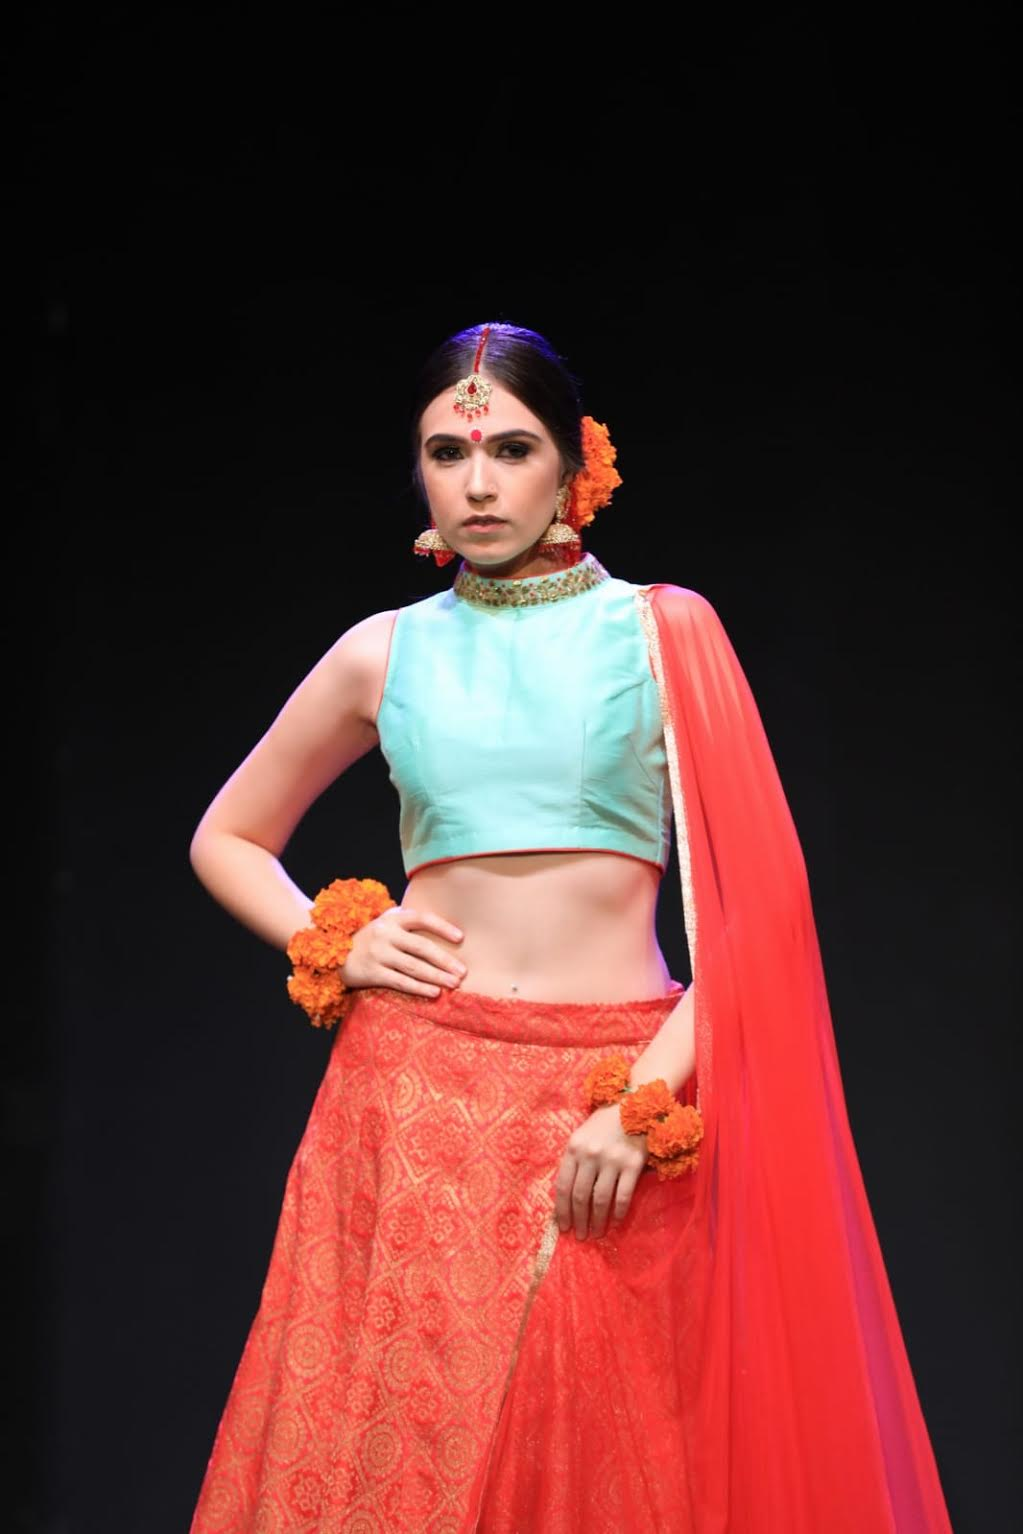 Fashion Show by OPIUM. nspired by the grand empires of the Mughals and the colours and kitsch of the Indian streets today, OPIUM by Bubbly J is an artisanal Indian fashion label based in Singapore with an international appeal. Photo courtesy: Esplanade